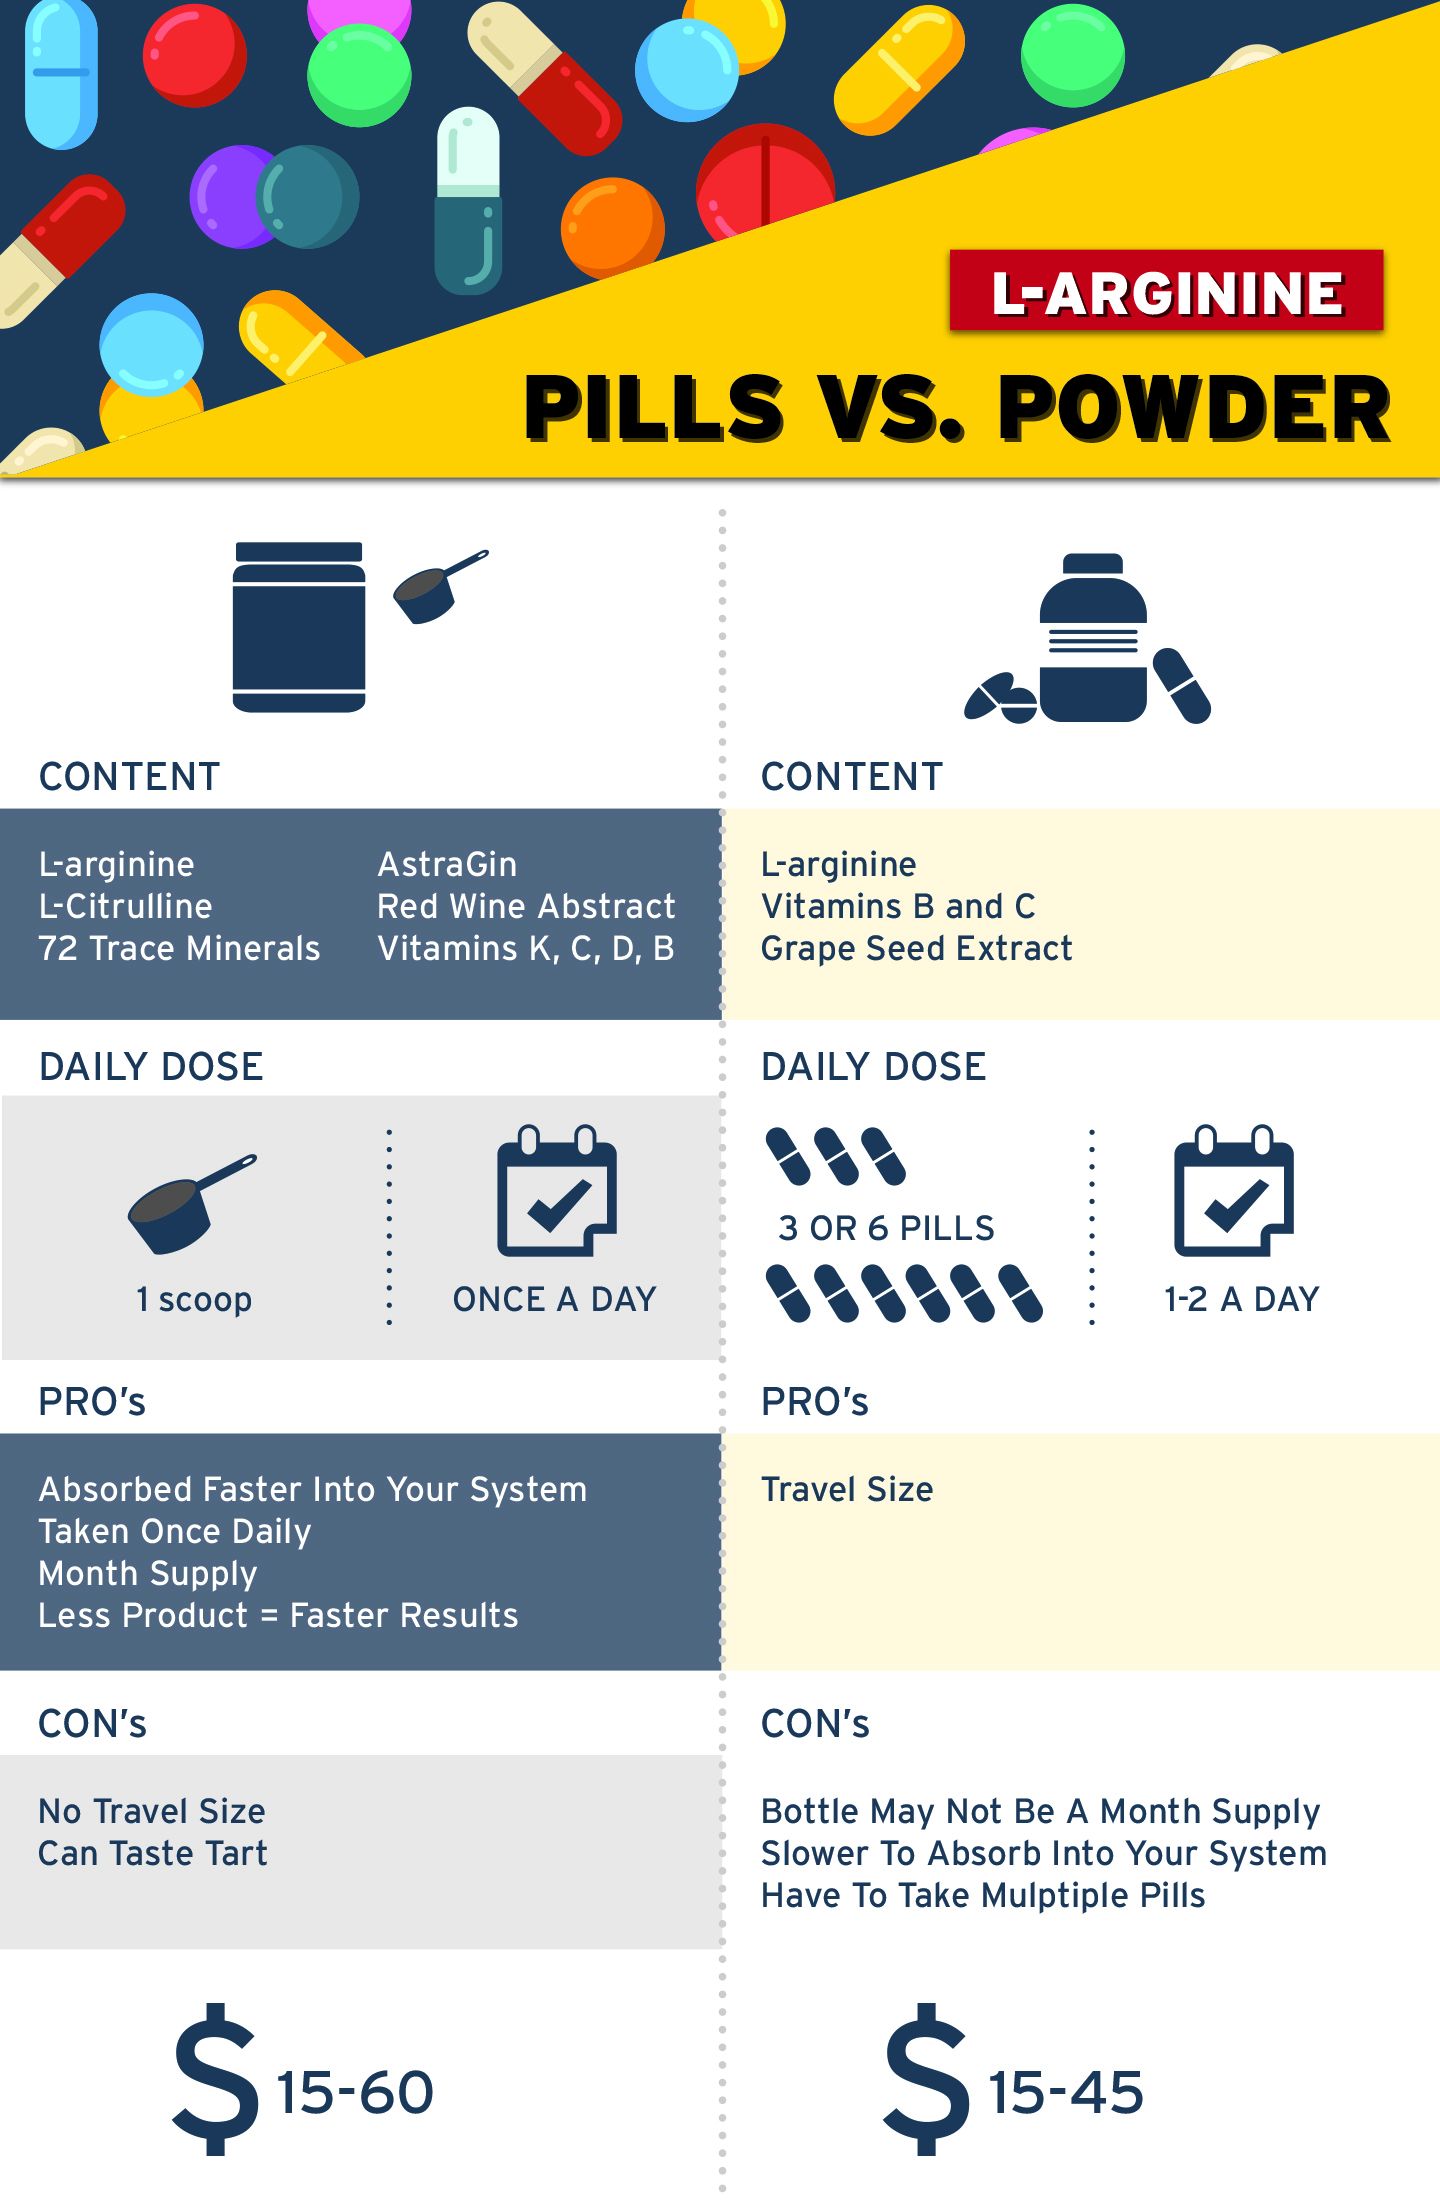 L-Arginine Pills Compared to Powder